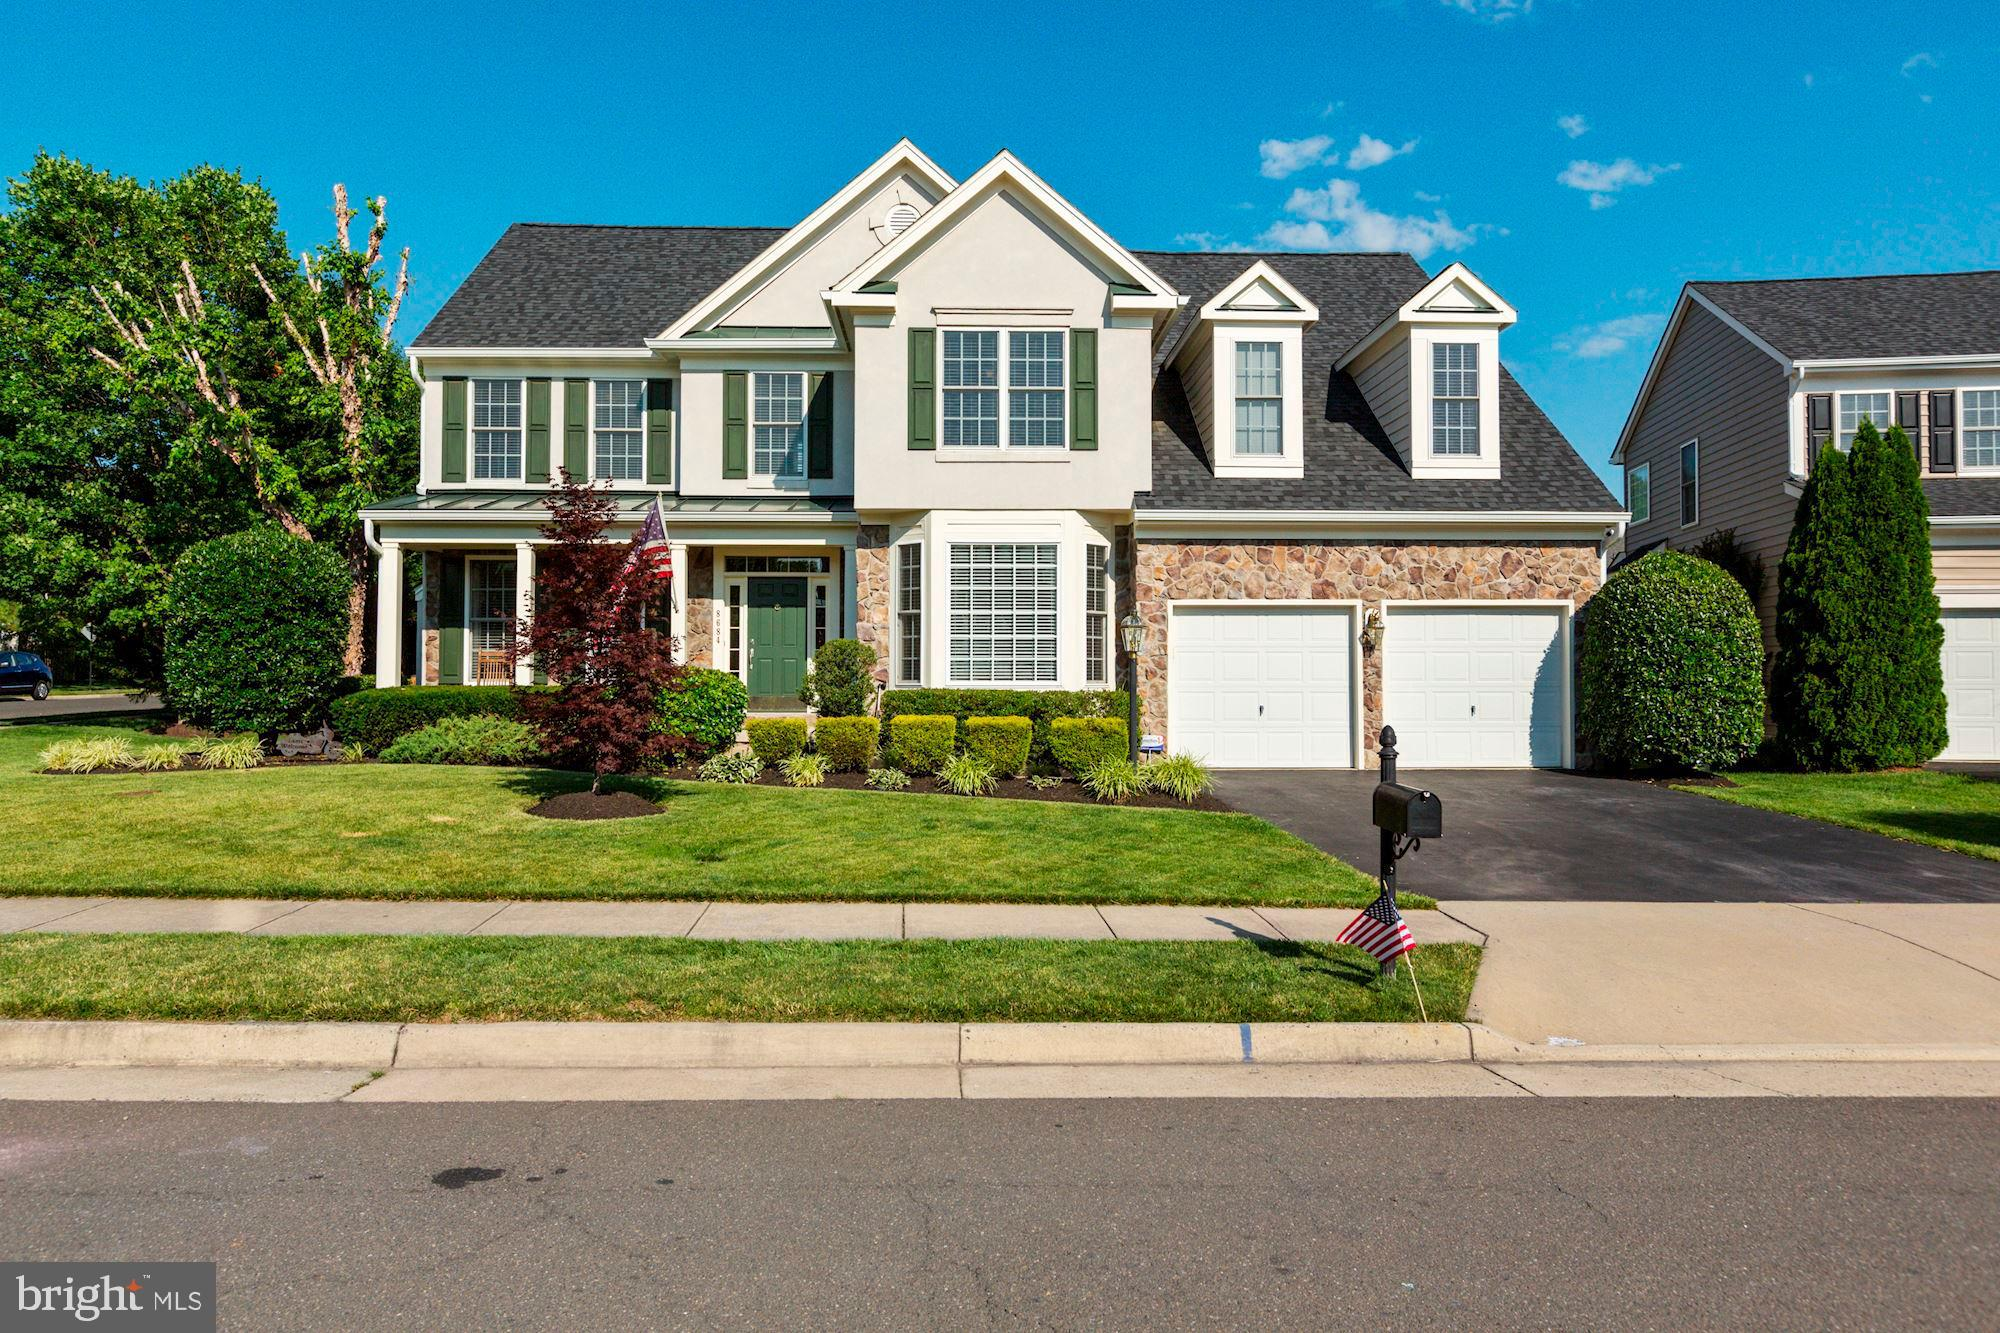 Welcome home! This former model home still shows like a perfect 10! When you drive up you immediately will notice the amazing curb appeal. Enter into your 2 story foyer and to your left you have a formal living room with gas fireplace and spacious formal dining room with bay window.  The kitchen offers double ovens, gas cooktop and eat in space.  This is an open floor plan that leads into your Amazing great room with Stone Fireplace.  Bonus to this home is a sunroom that leads to your composite deck.  To round off the main level you have a half bath and main level office.  Travel upstairs to Huge Master Bedroom with attached sitting room and master bath.  The upper level has 3 additional secondary bedrooms, another full bathroom and upstairs laundry.  Down in your walk up basement you will find a huge rec room, den that could be a 5th bedroom, full bath, and Gigantic Storage Room.  This home has been freshly painted, New Roof in 2019, and Upstairs AC in 2018.  This is a must See